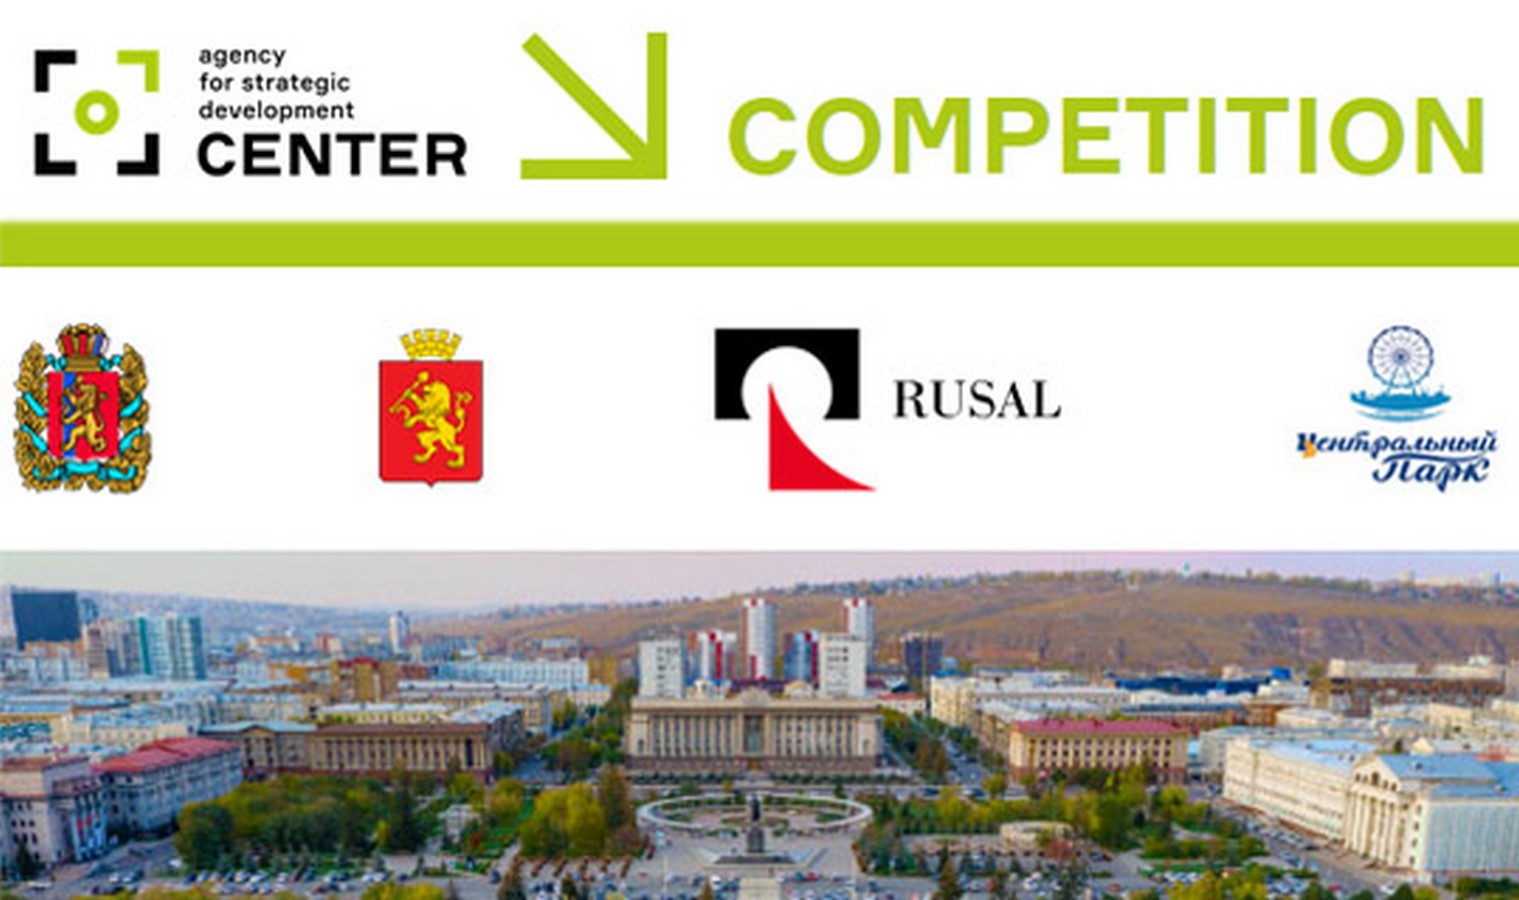 10 International competitions architects must participate in - Sheet5